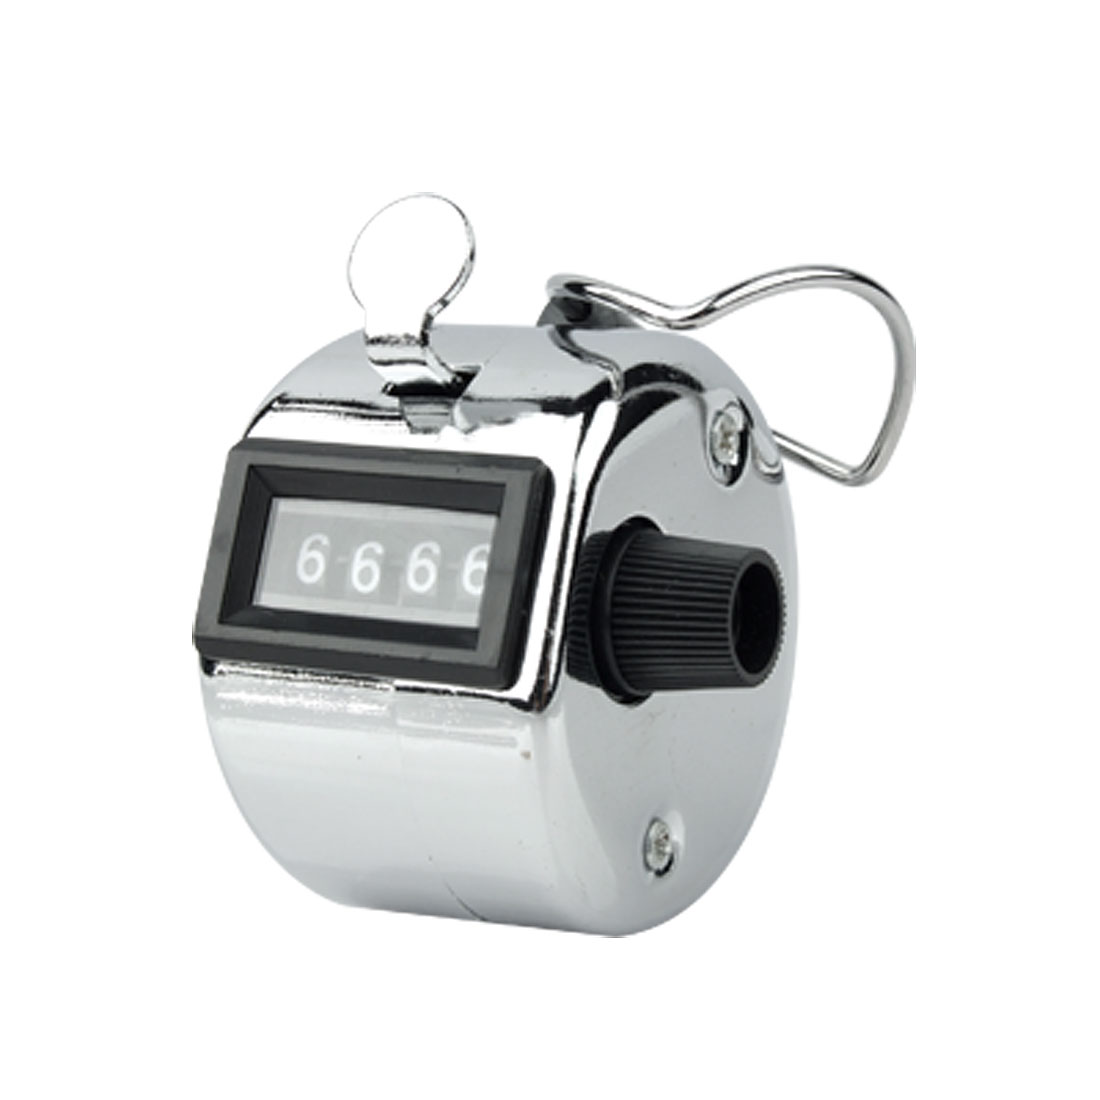 Stainless Steel Manual Hand Held Tally Counter with 4 Digits